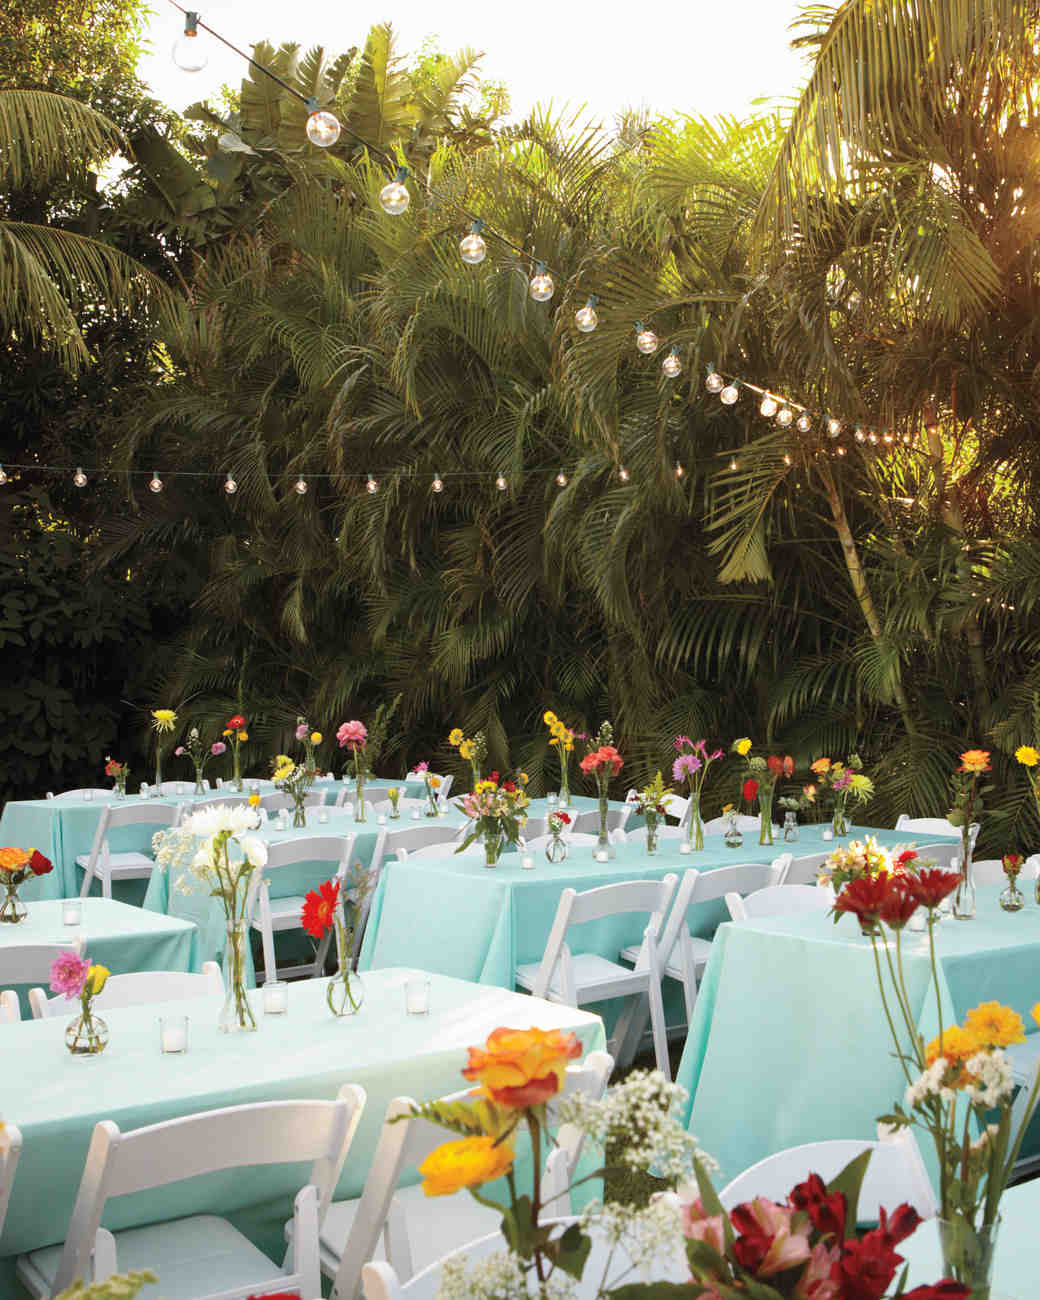 Simple Outdoor Wedding Reception Ideas: 16 Things You Need To Know To Pull Off An Outdoor Wedding